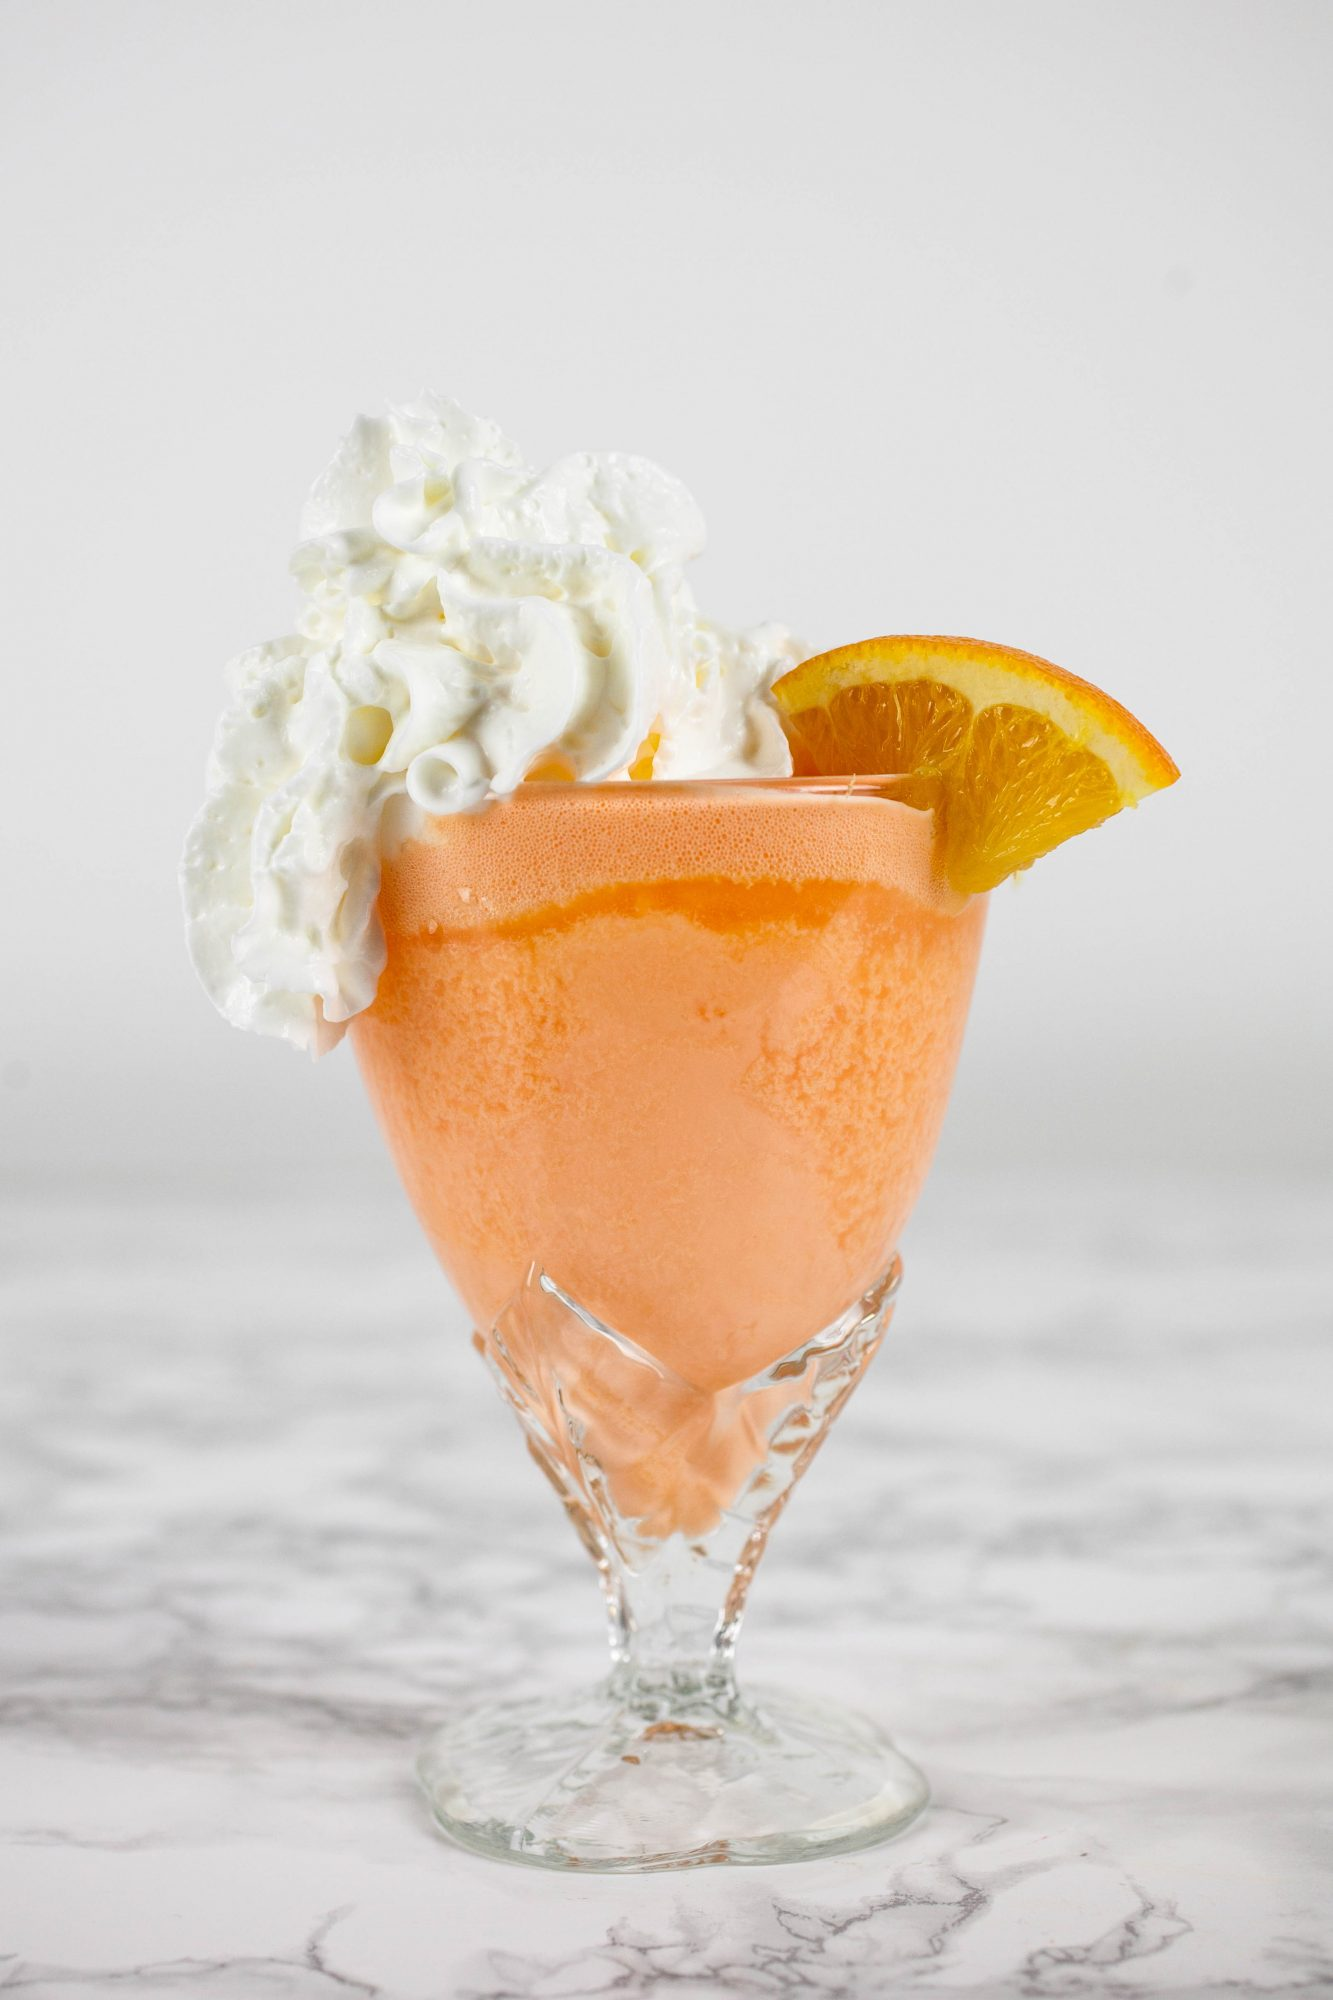 Mandarinata Dreamsicle